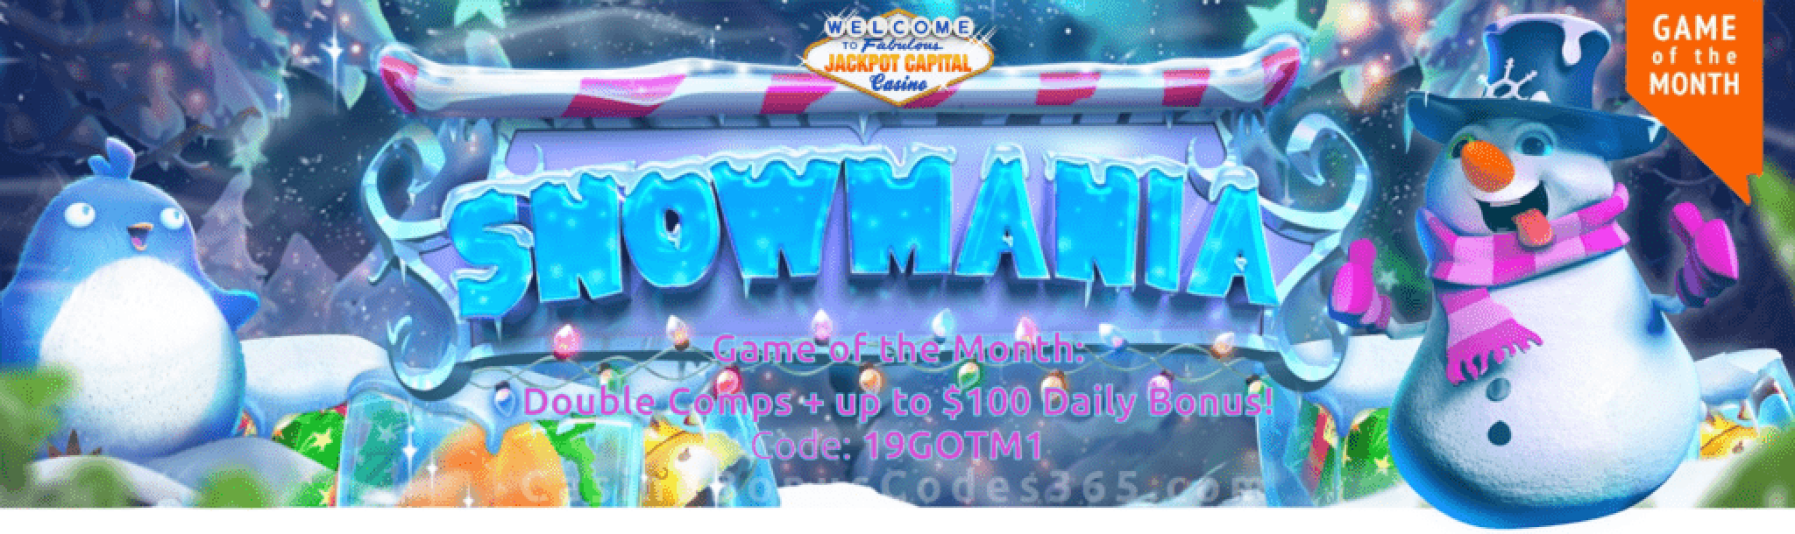 Jackpot Capital January Game of the Month RTG Snowmania